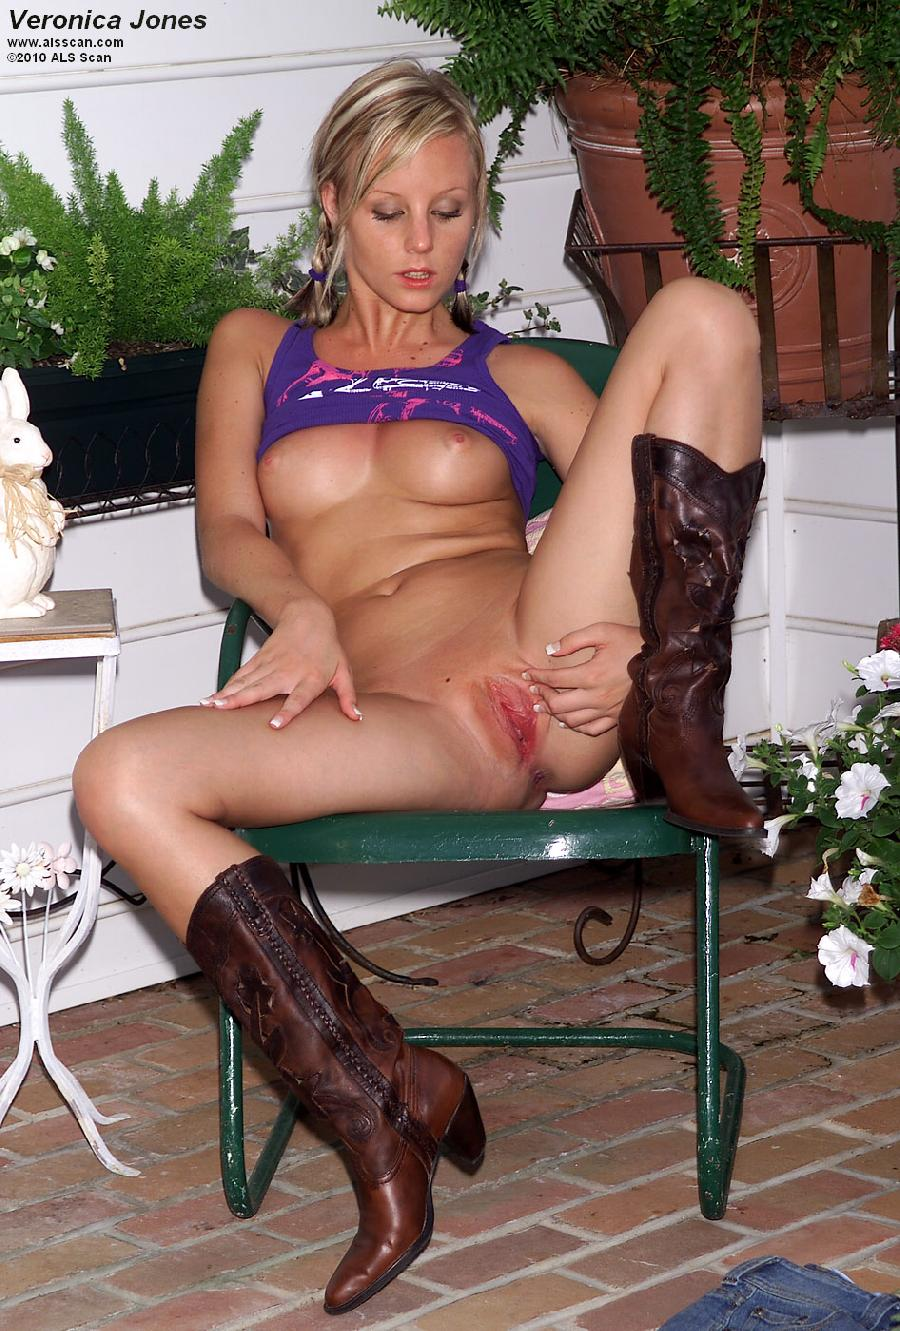 Blonde cowgirl with red wet pussy - Veronica Jones  - 6